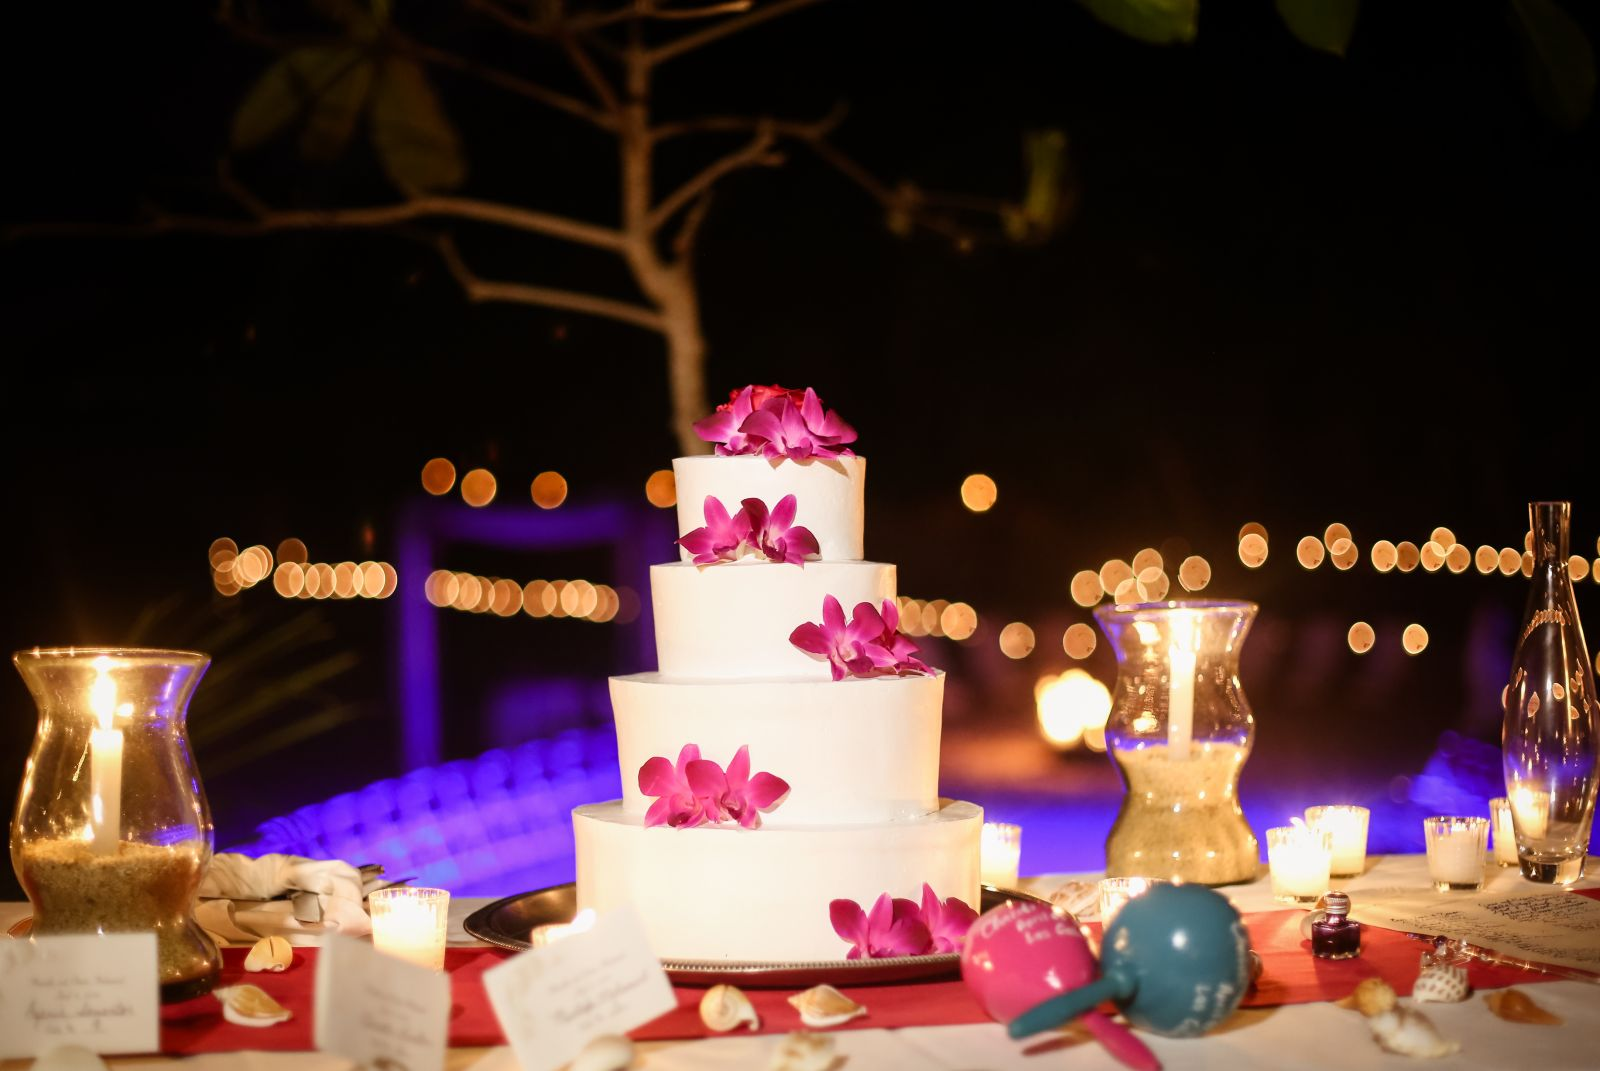 spectacular wedding cake with pink orchids